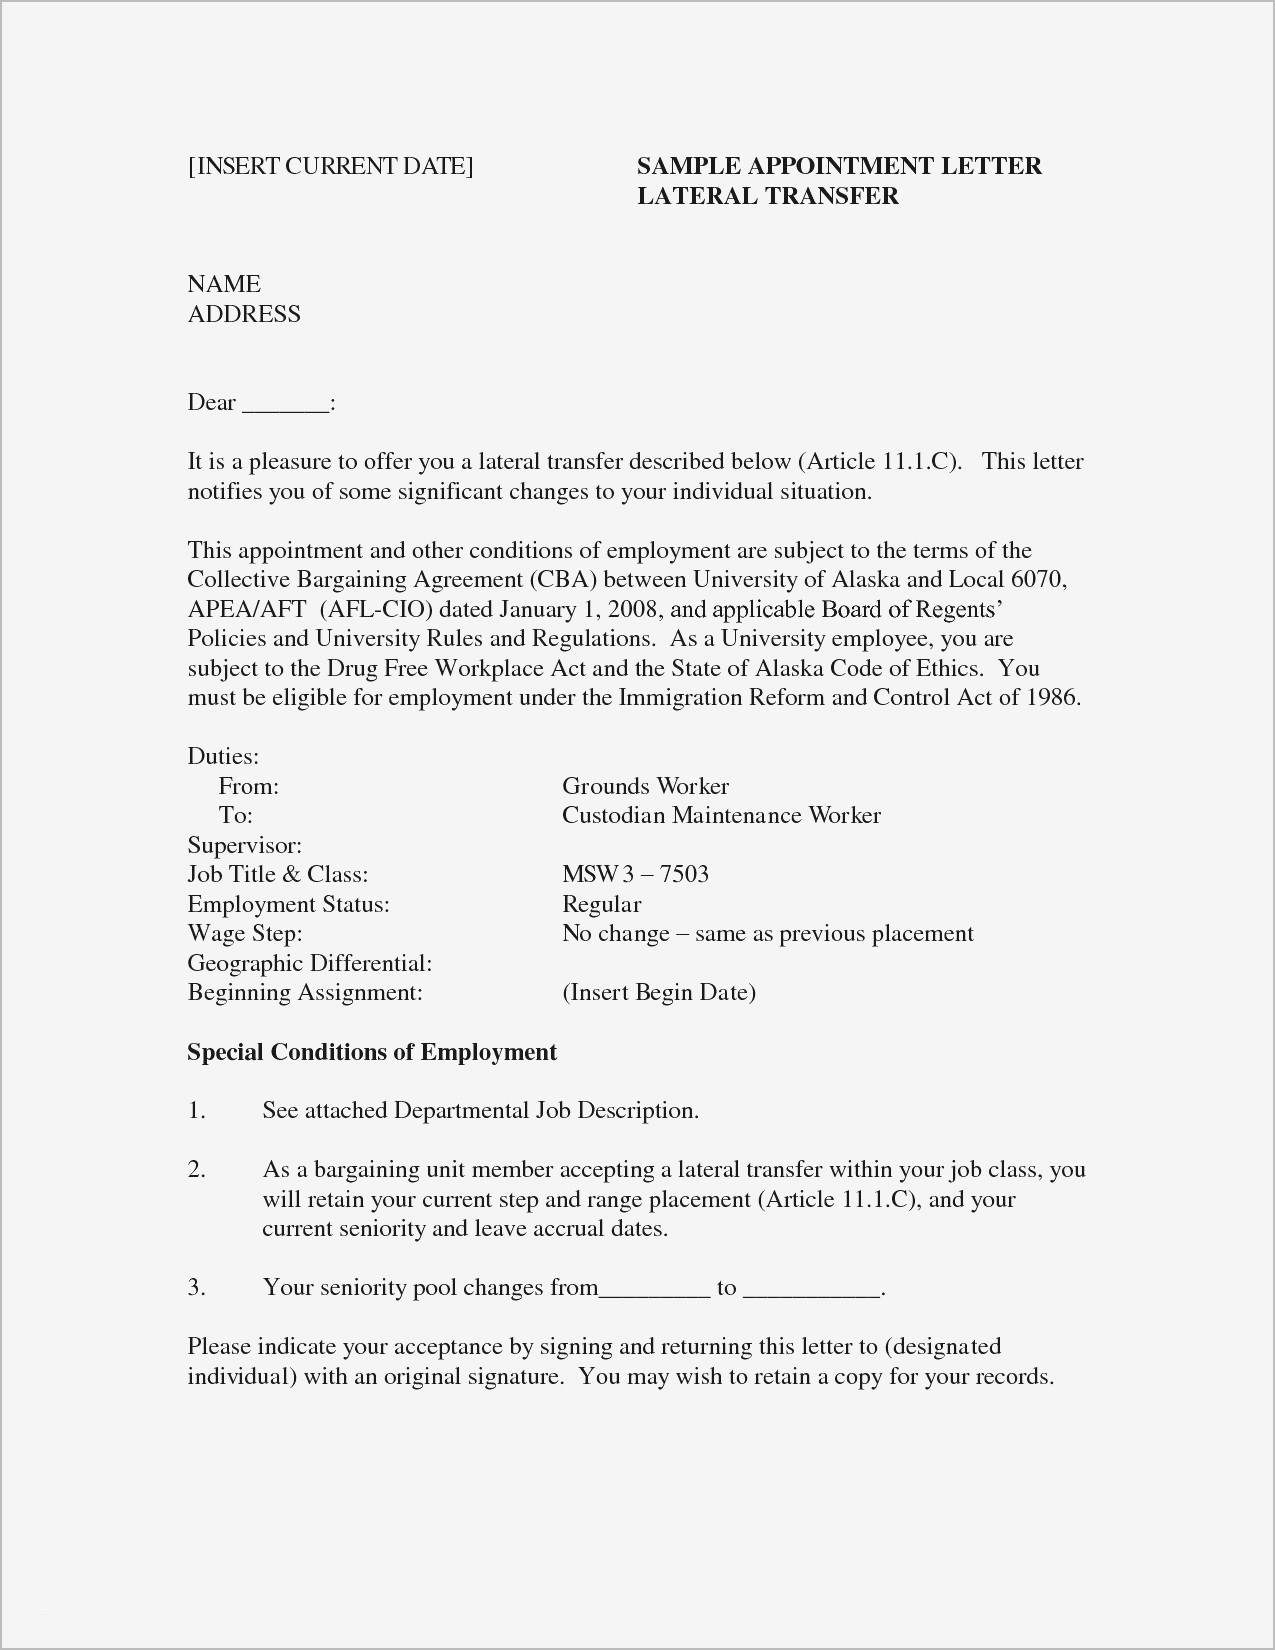 teacher assistant job description for resume example-Sample Resume For Adjunct Professor Position New Resume Examples For Teacher Assistant Elegant Fresh Resume 0d Resume 3-a